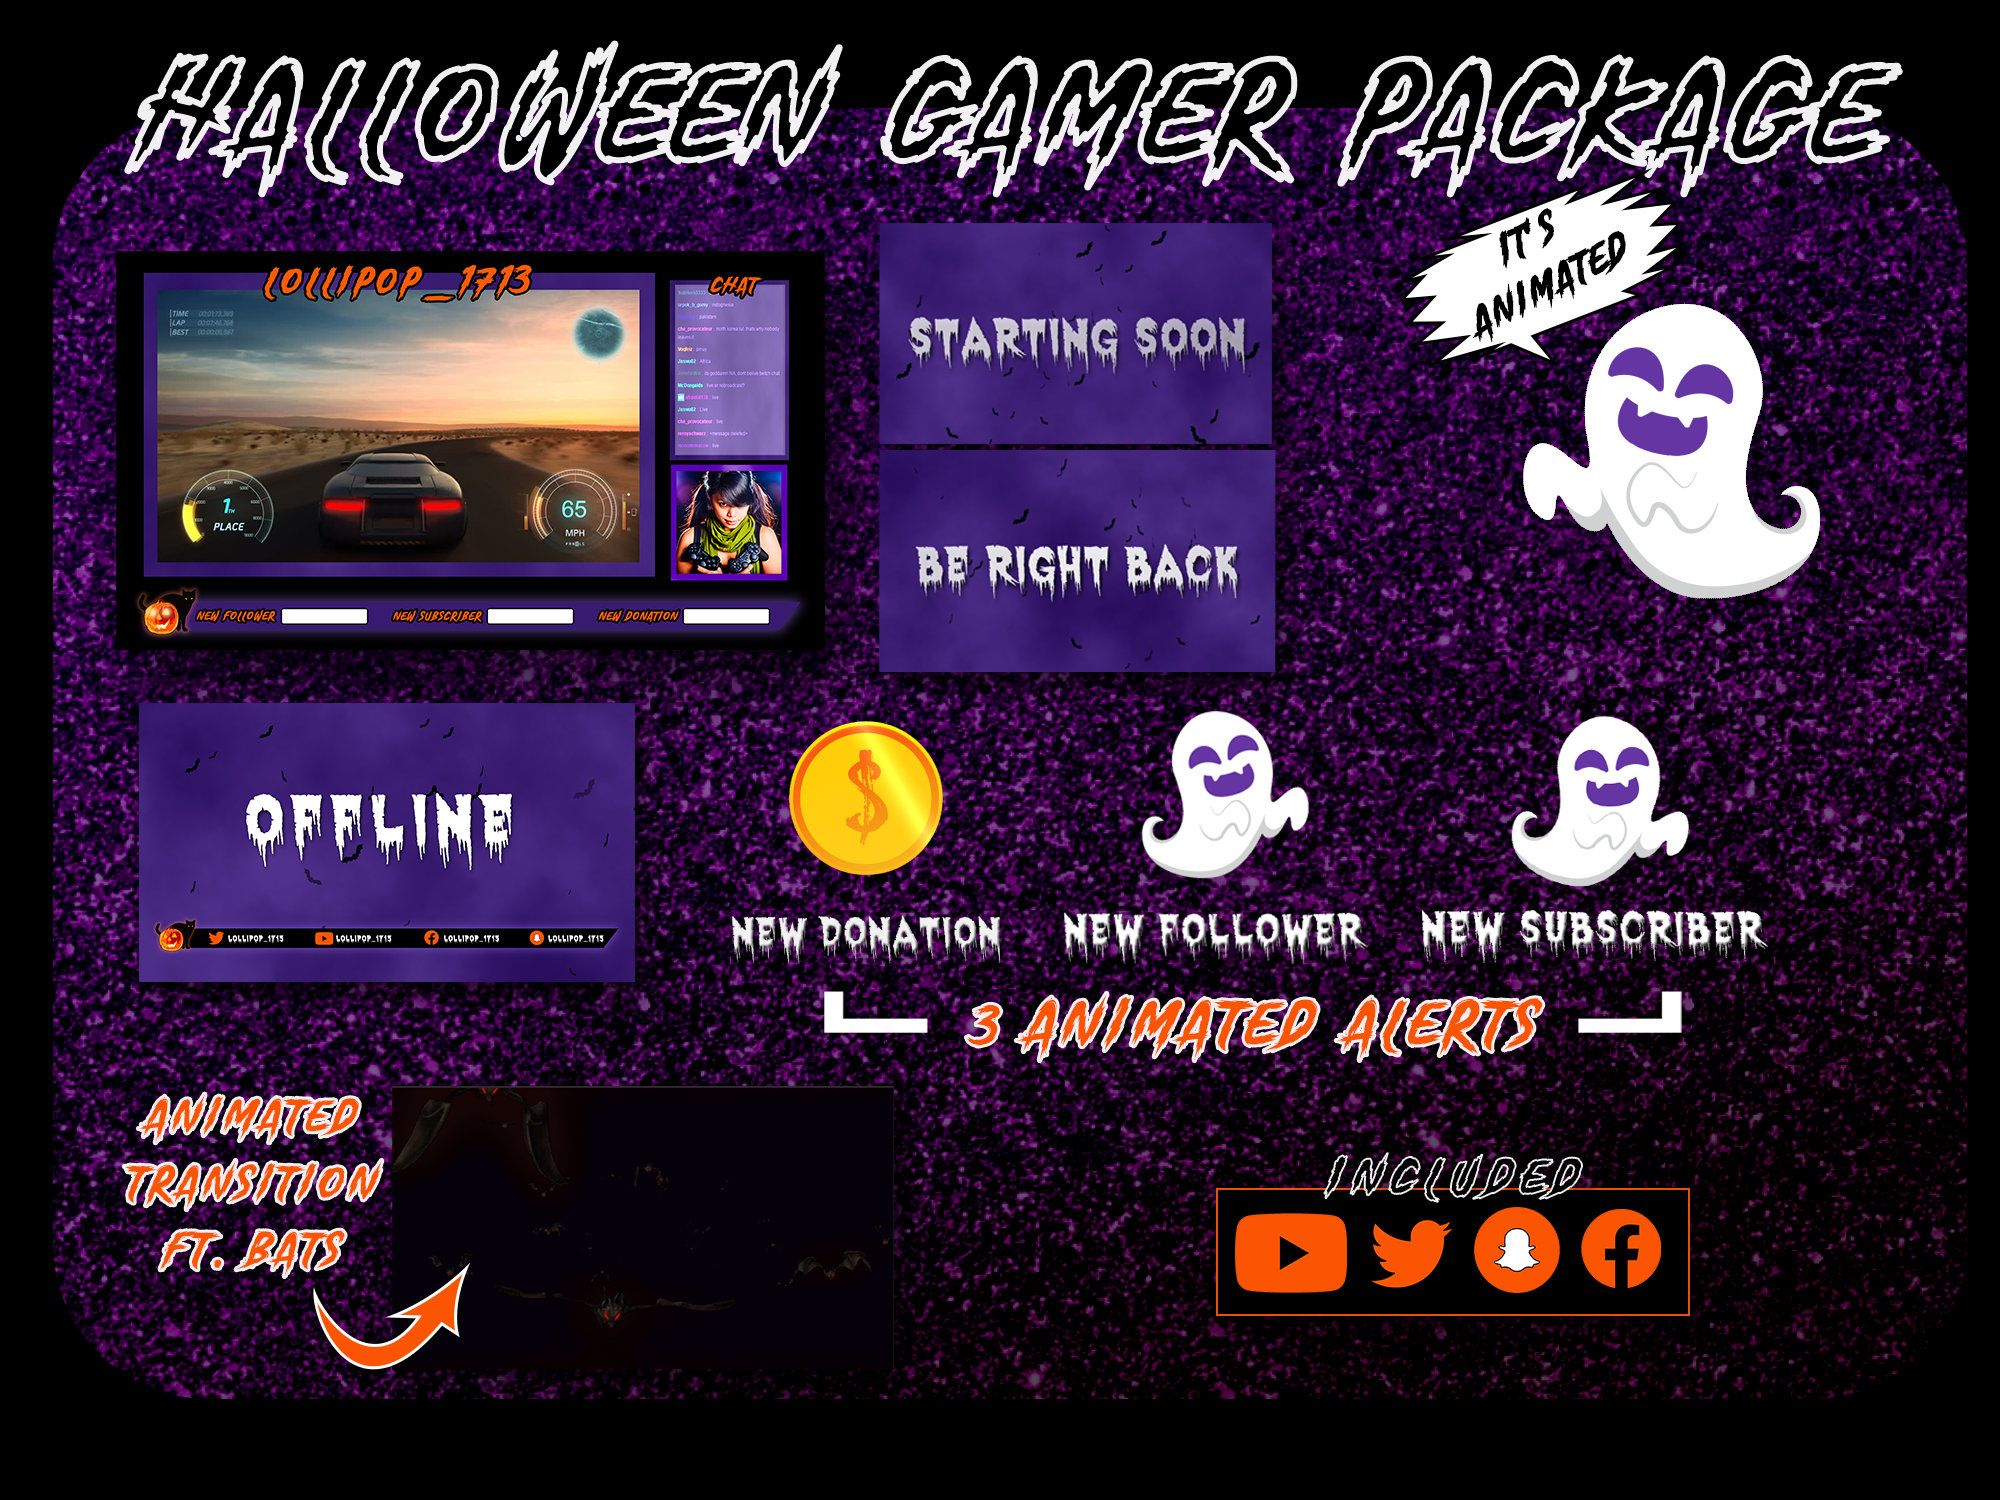 Streaming Halloween 2020 Animated Halloween Theme Gamer Stream Overlay Package | Etsy in